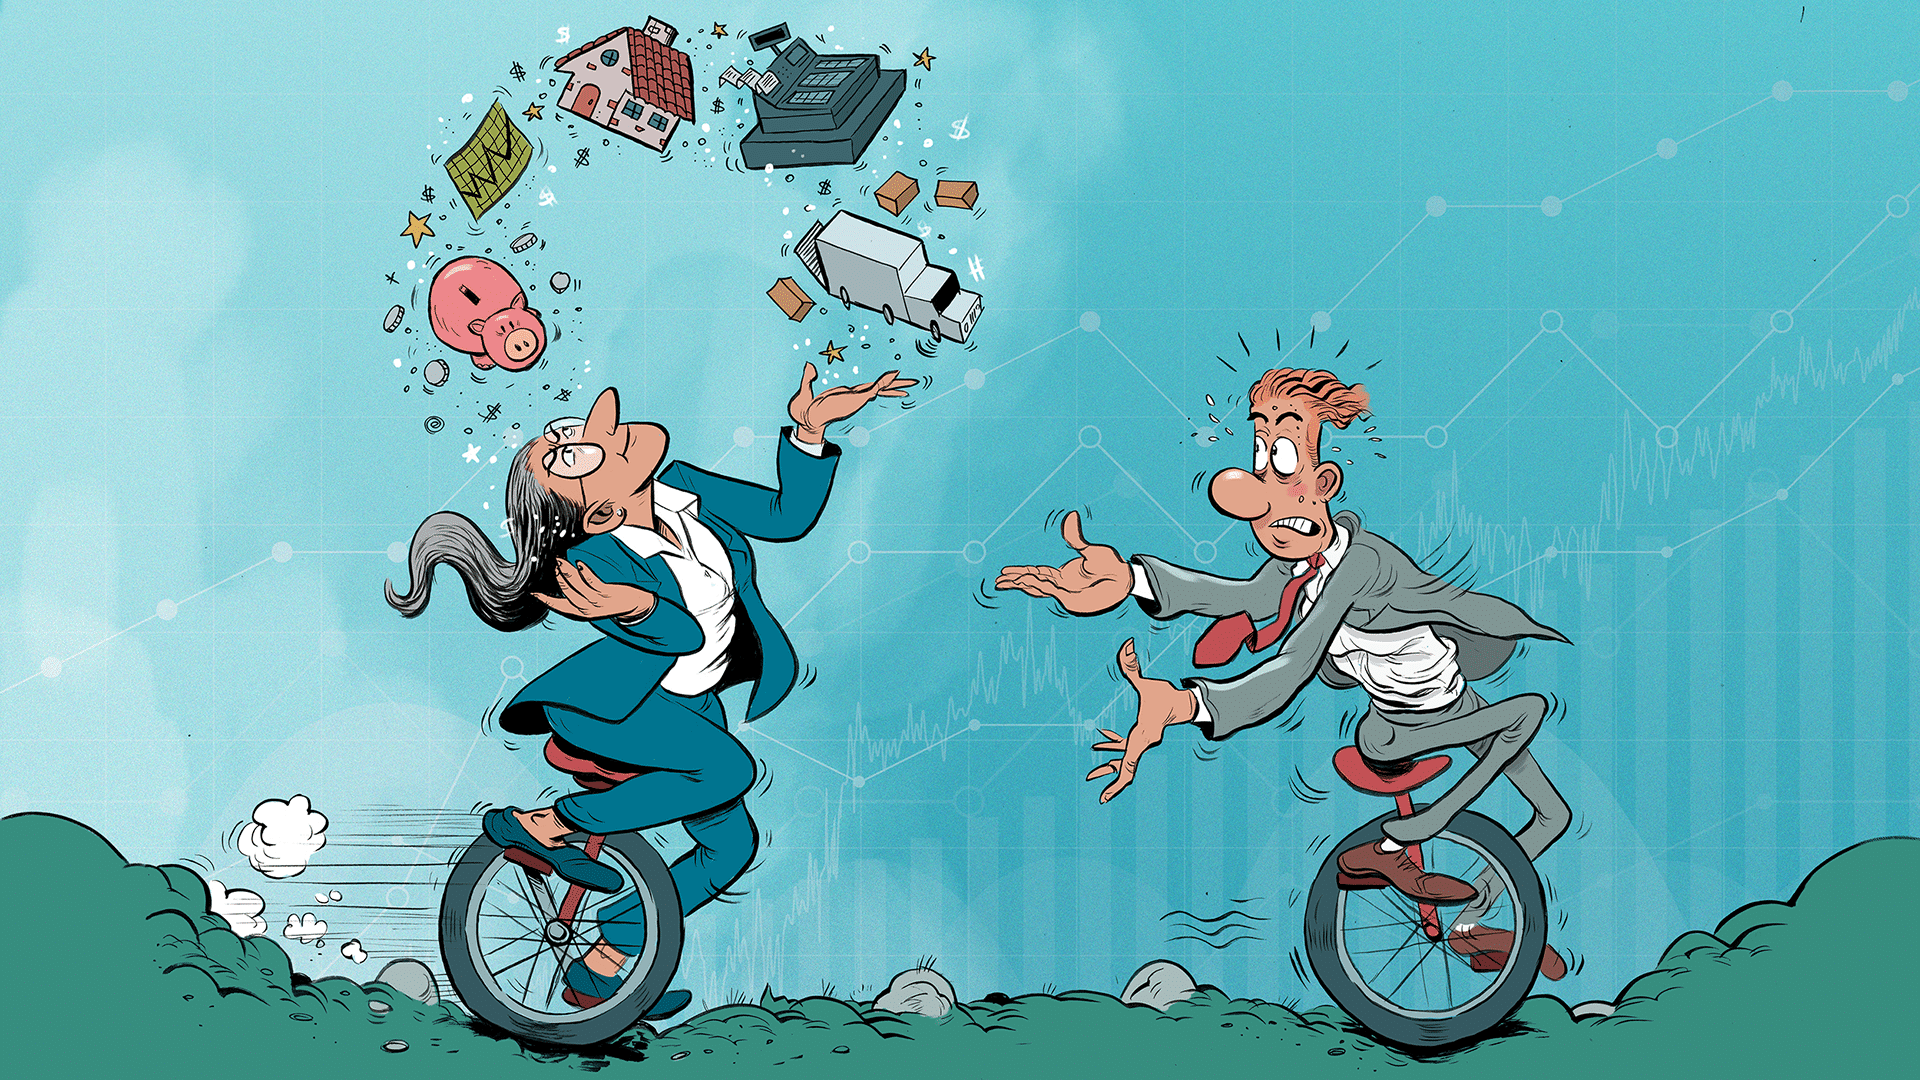 A Business owner is juggling various tasks in her business while riding a metaphorical unicycle while a business successor awaits anxiously.